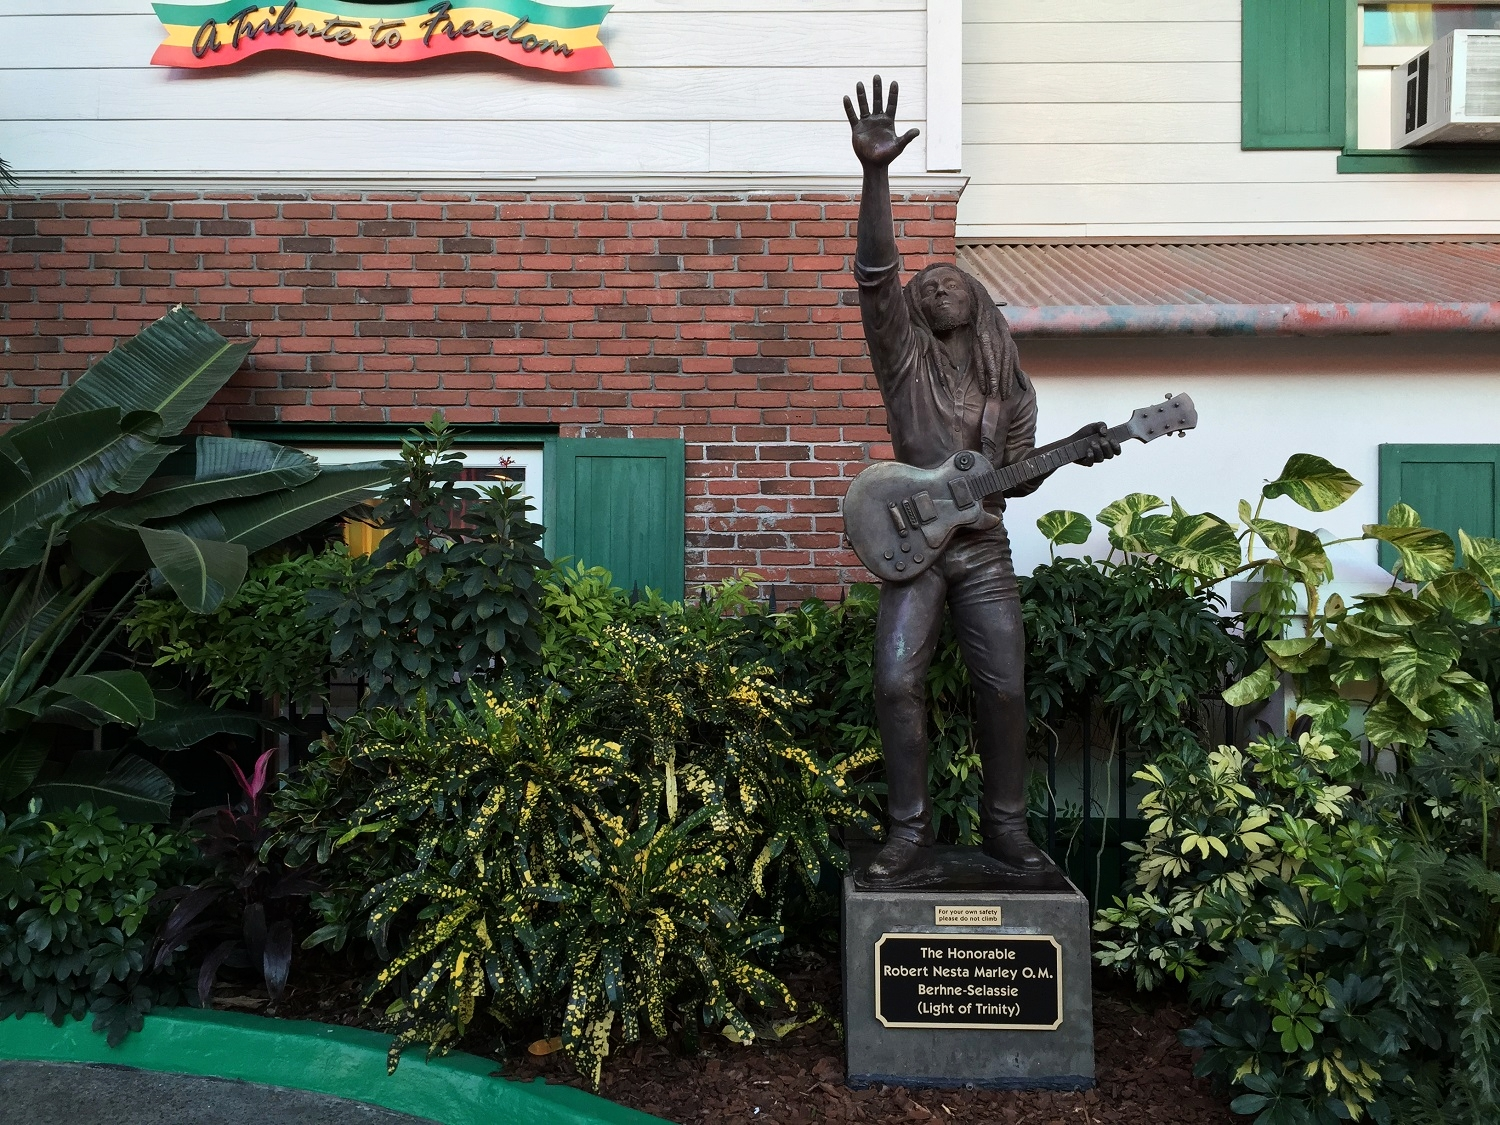 There is a Bob Marley statue in front of Bob Marley - A Tribute to Freedom.